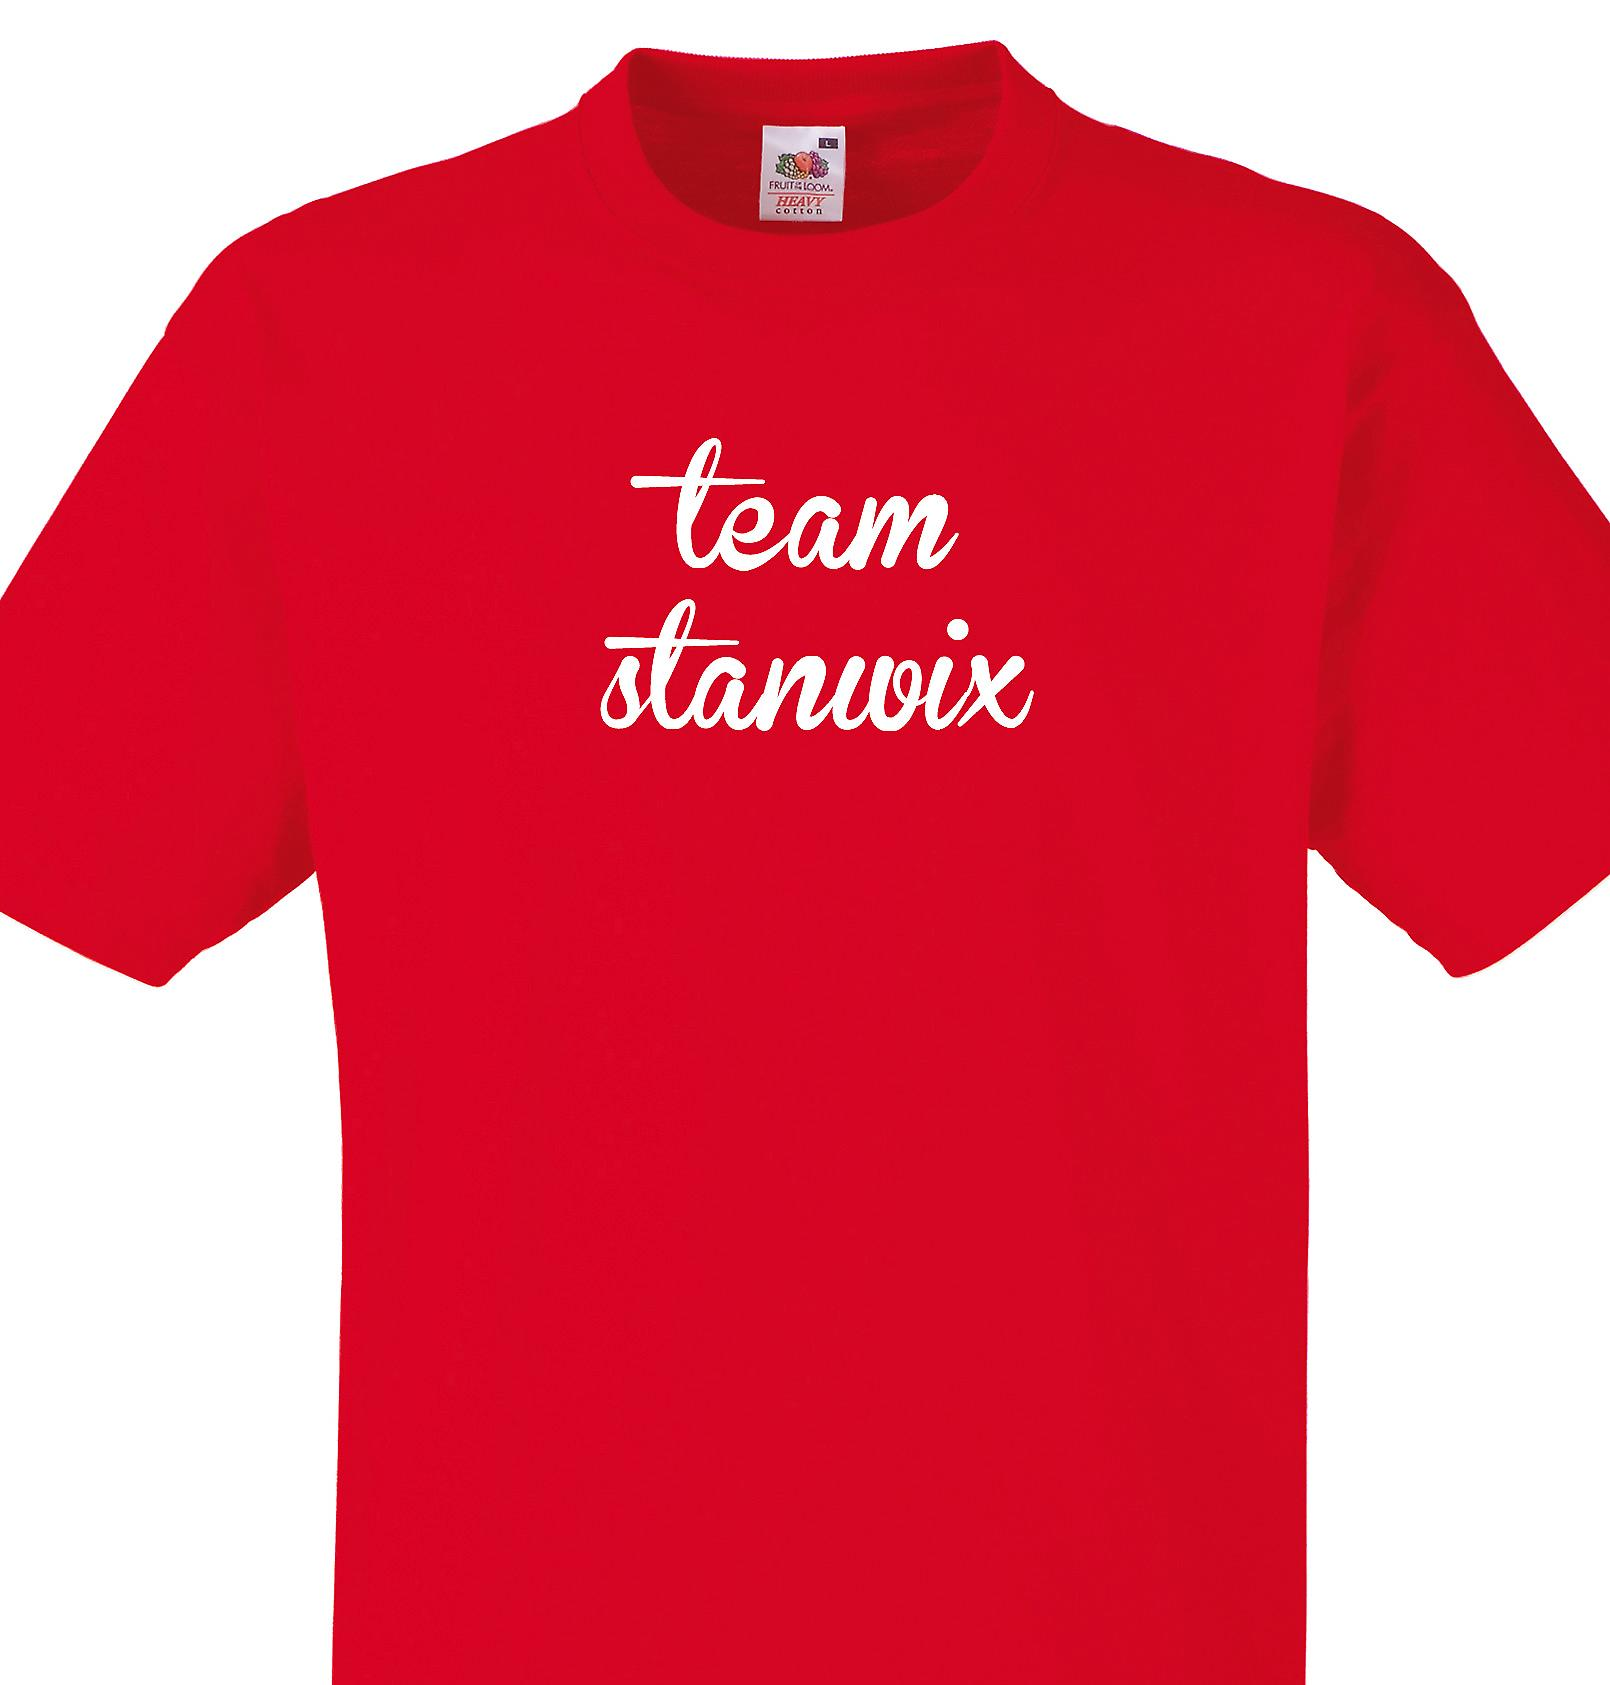 Team Stanwix Red T shirt